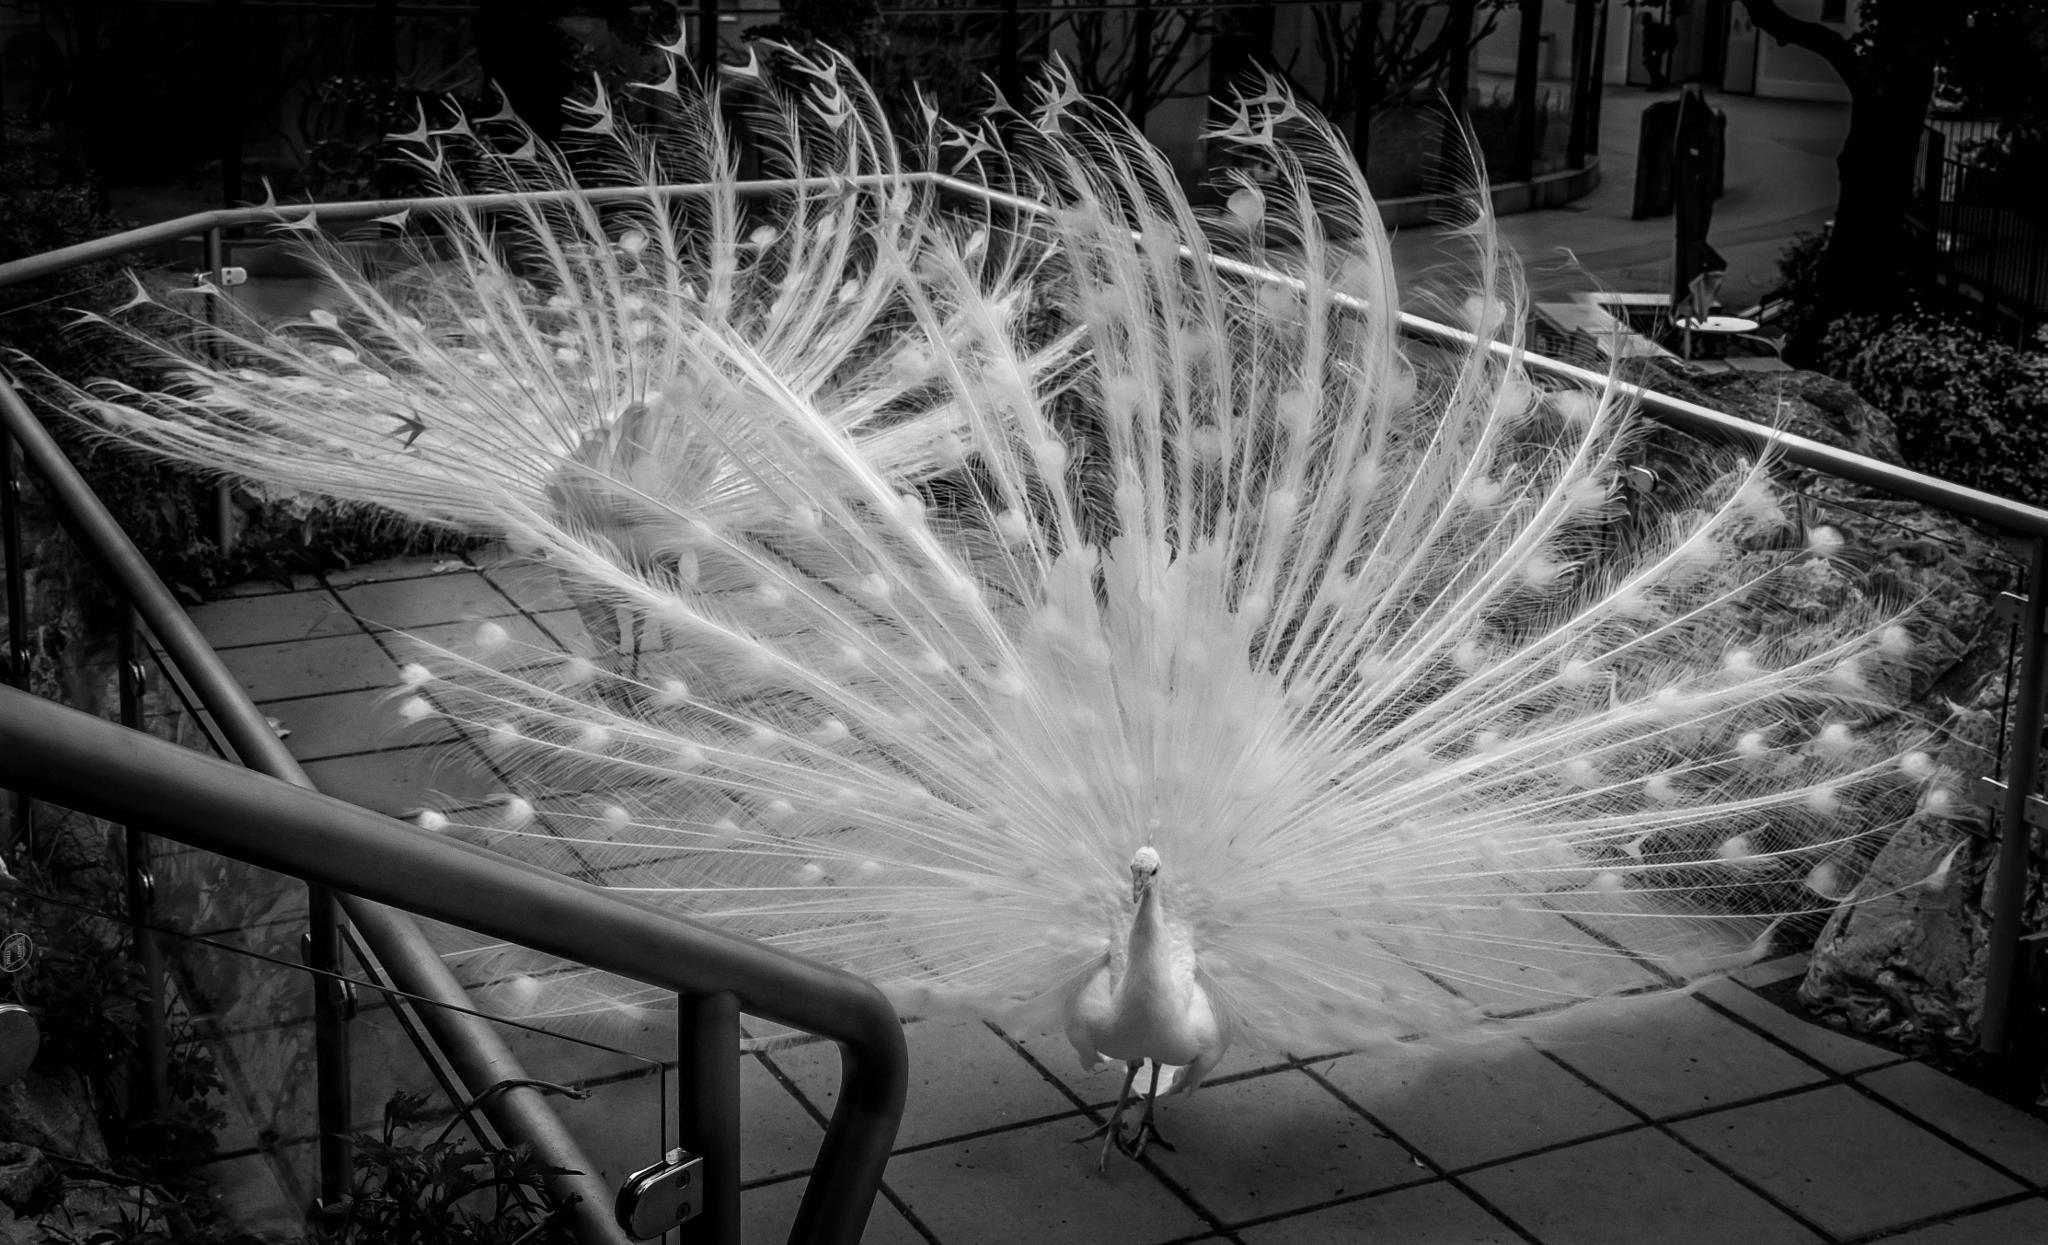 Dancing white peacocks by Malcolm